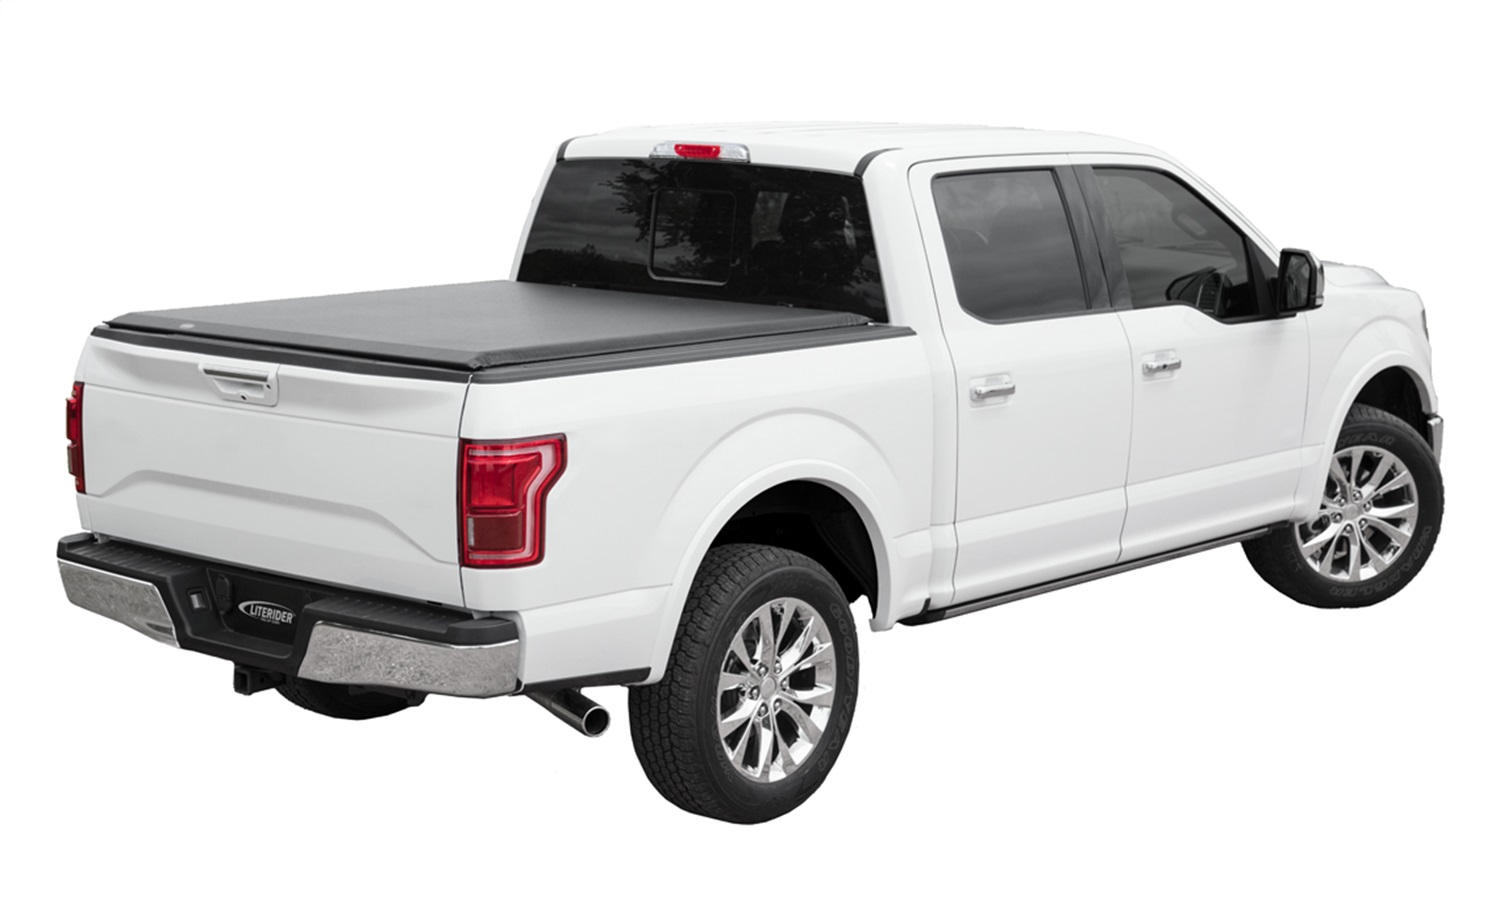 Access Cover 31369 LITERIDER Roll-Up Cover Fits 15-22 F-150